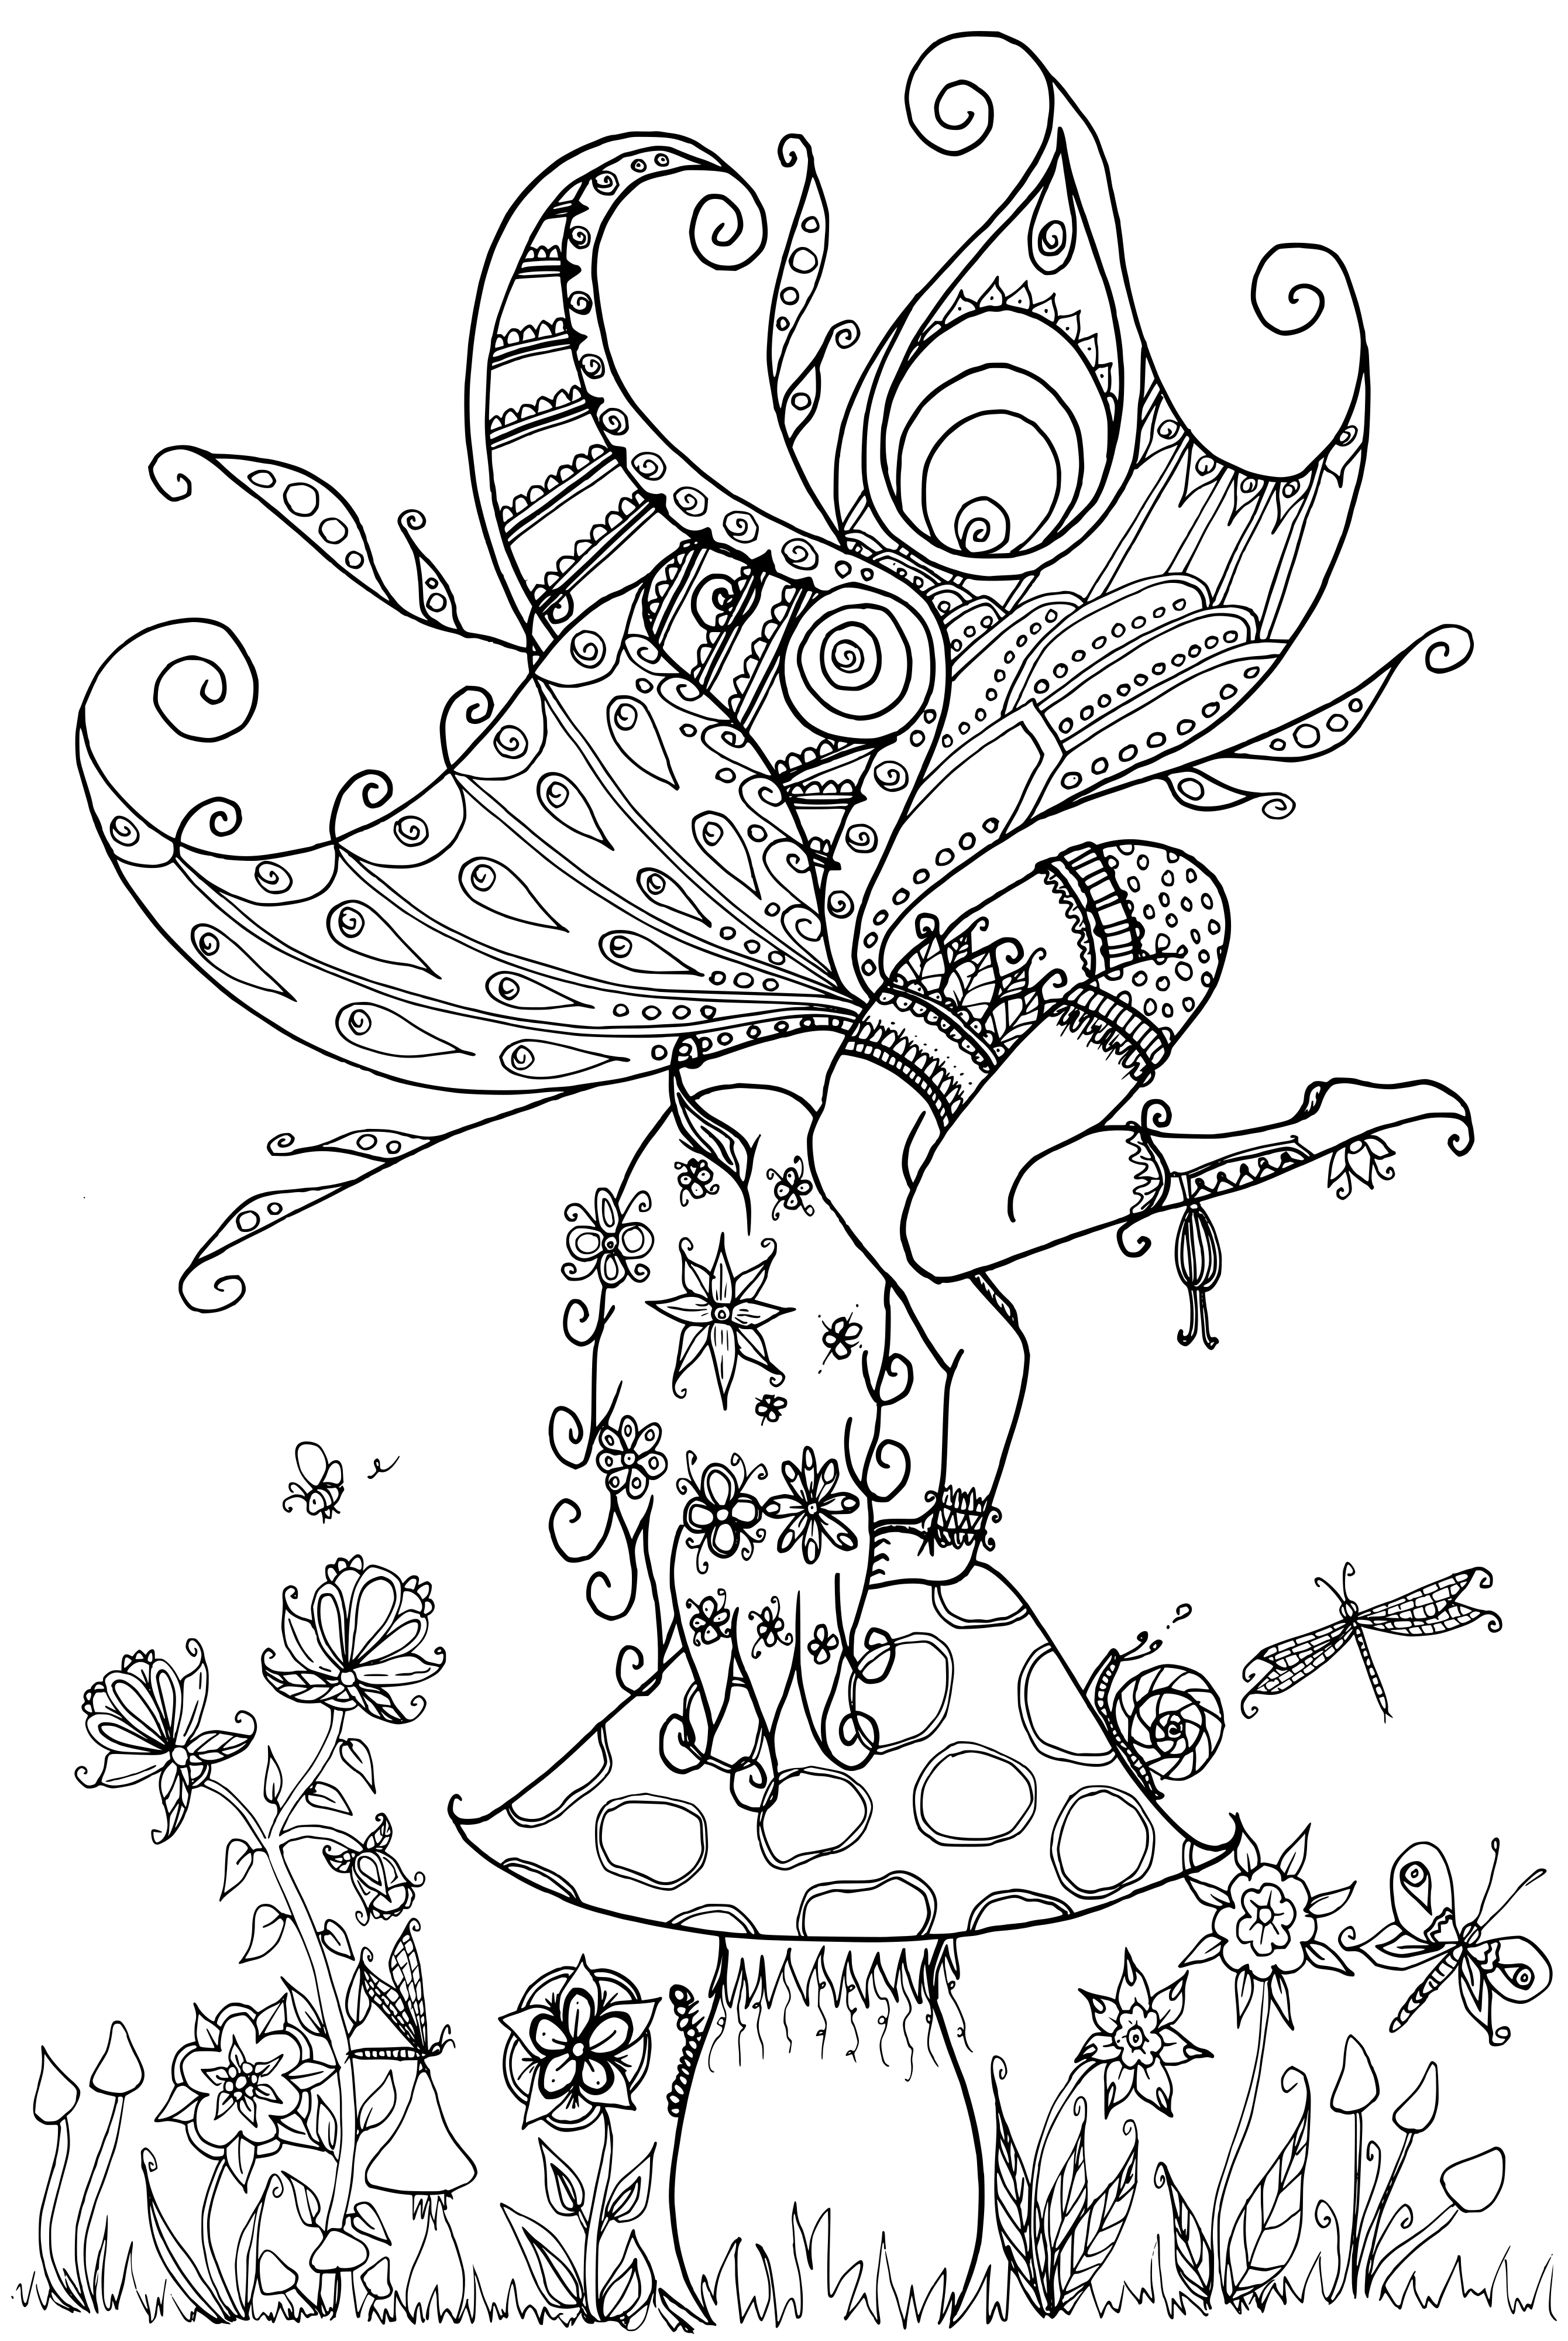 Fairy on a Toadstool by WelshPixie on DeviantArt